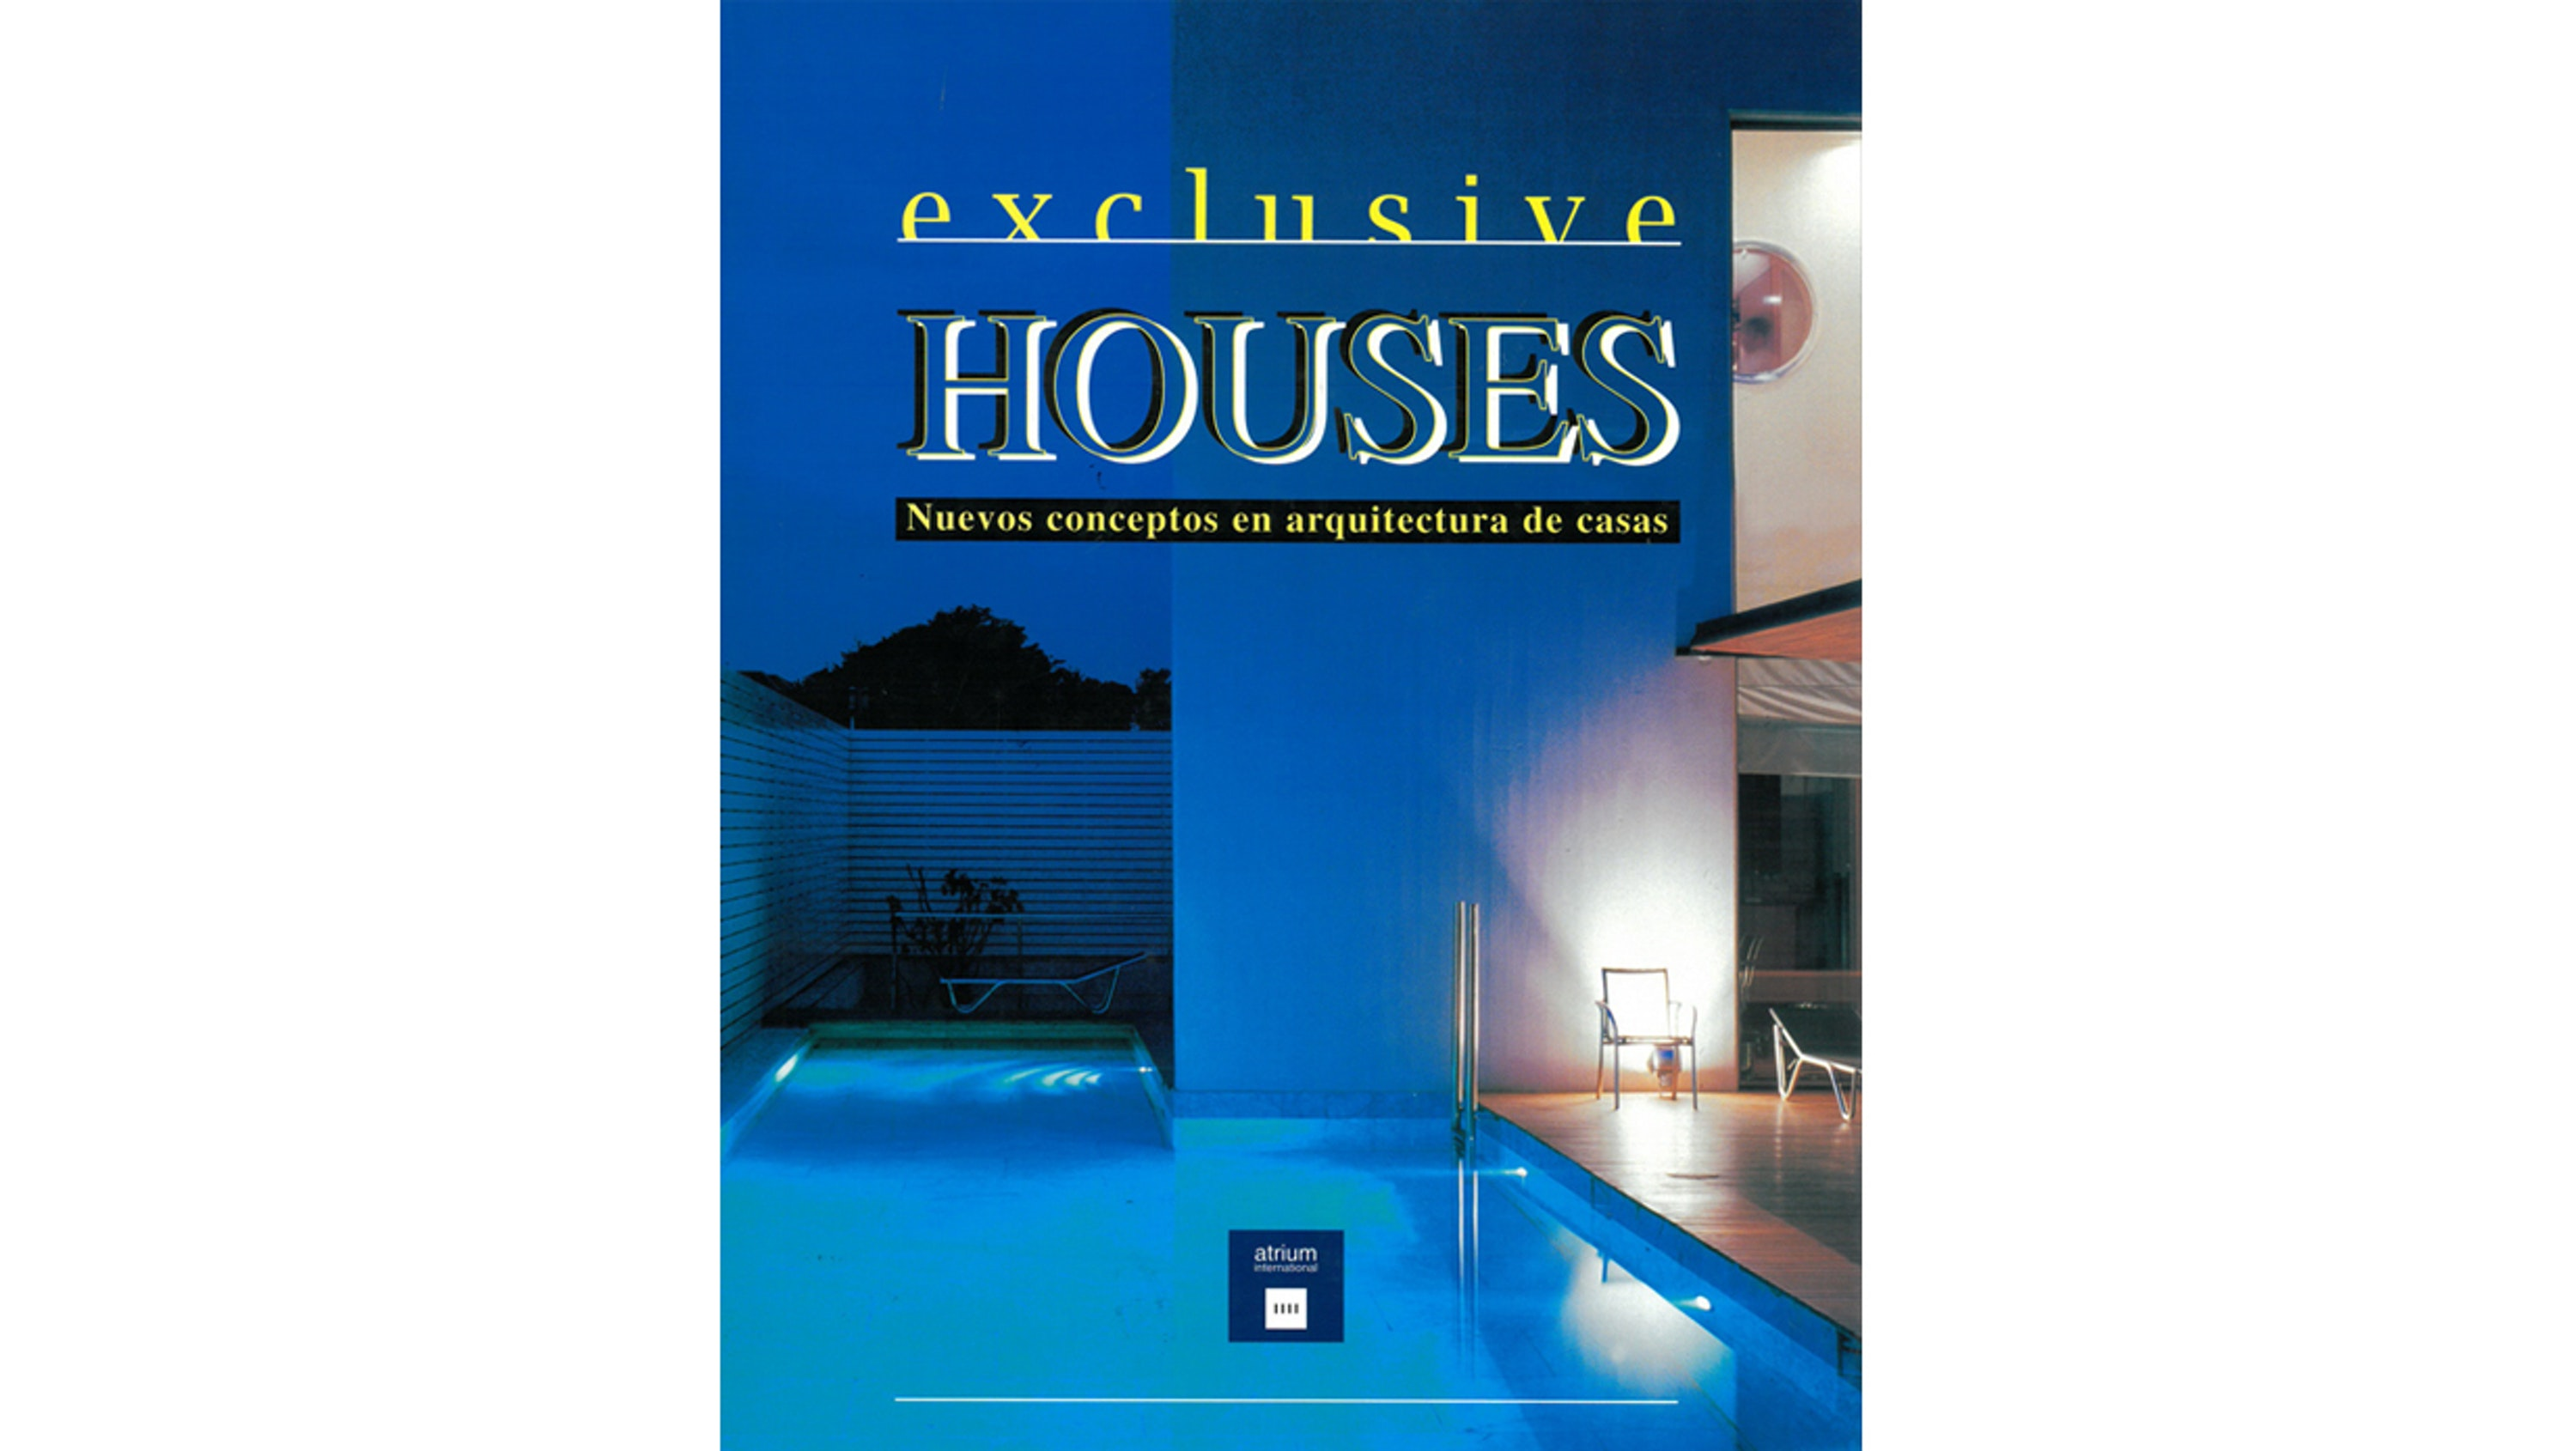 Exclusive Houses: A Brick & Glass House Thumbnail